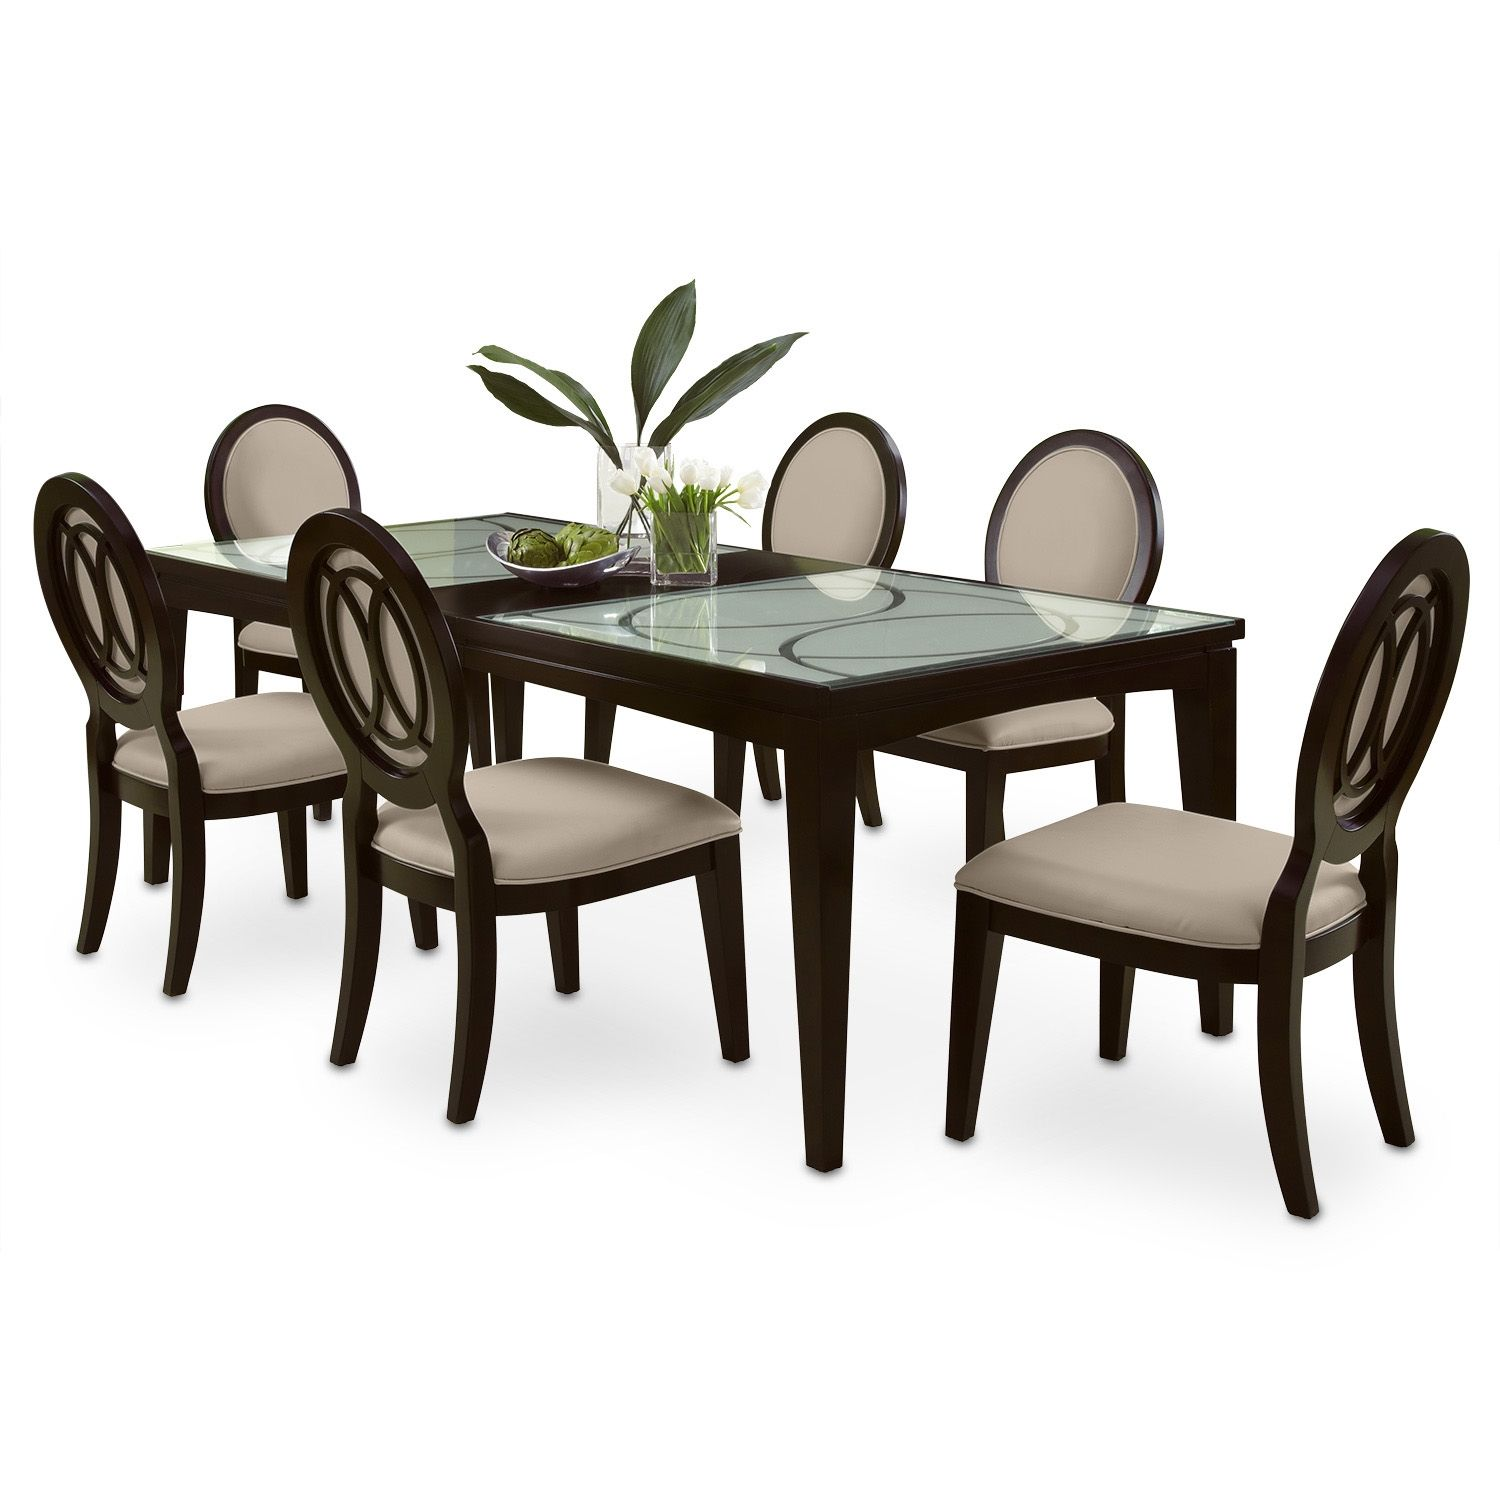 Paradiso 7 Pc Dining Room